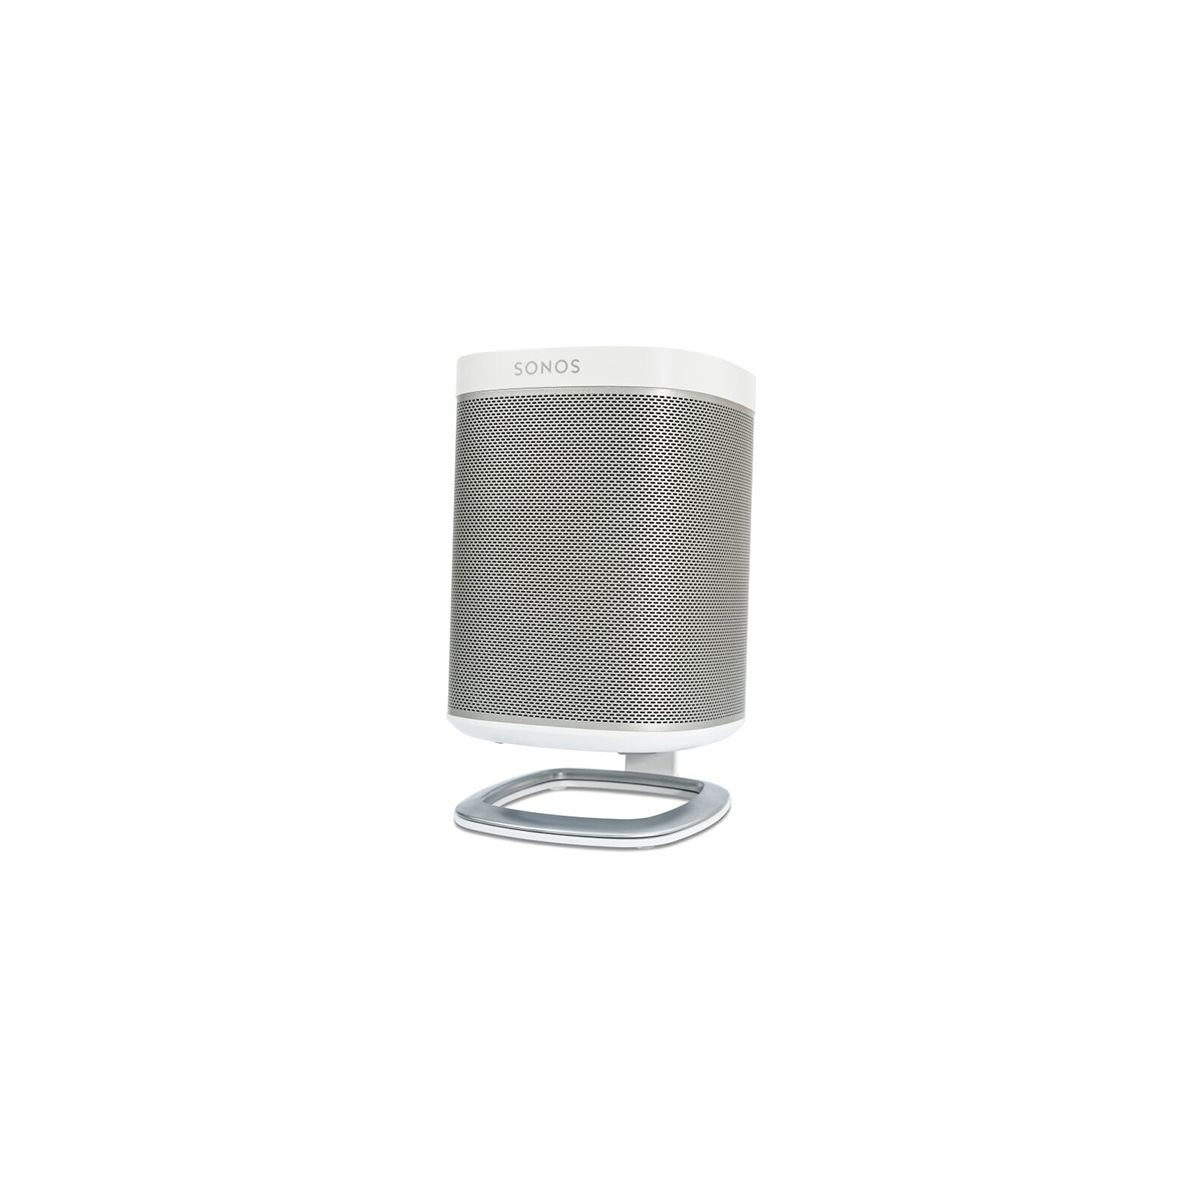 Pied d'enceinte flexson pied sonos play:1 blanc (unit�) (photo)